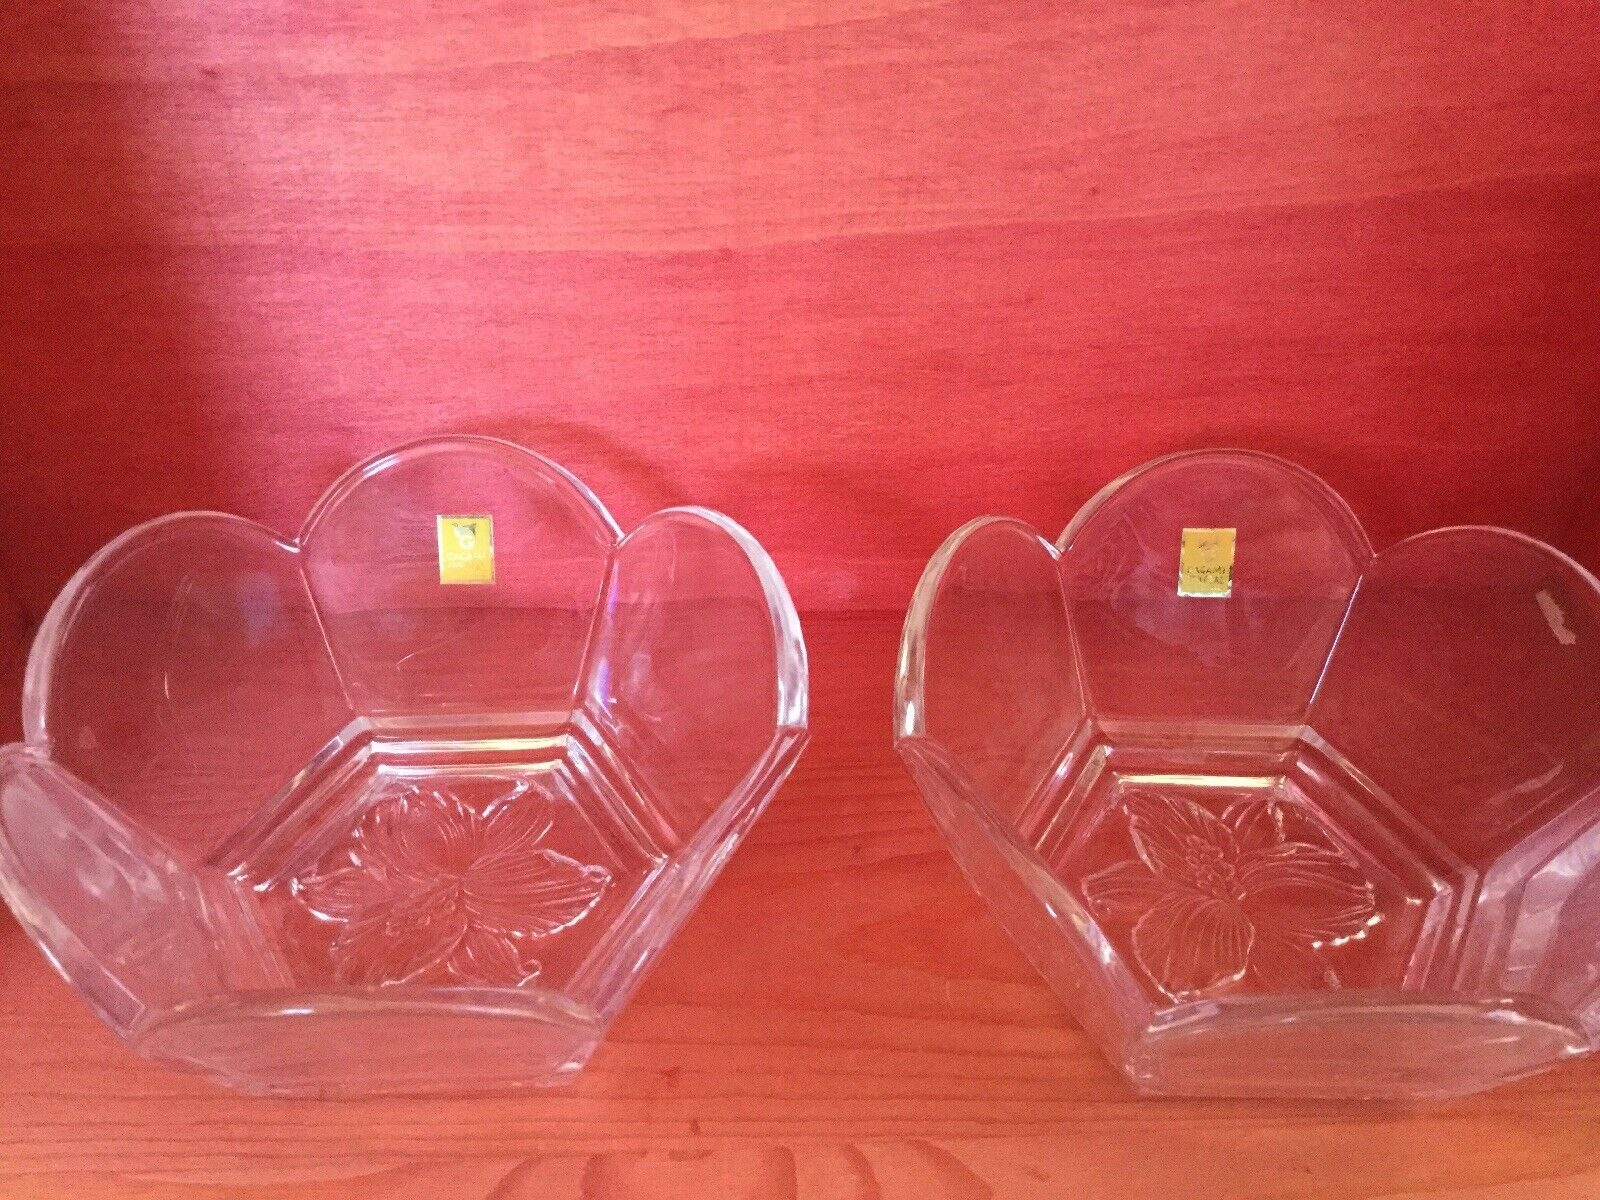 KAGAMI CRYSTAL 4 Candy Dishes - Fruit Bowls - Never Used